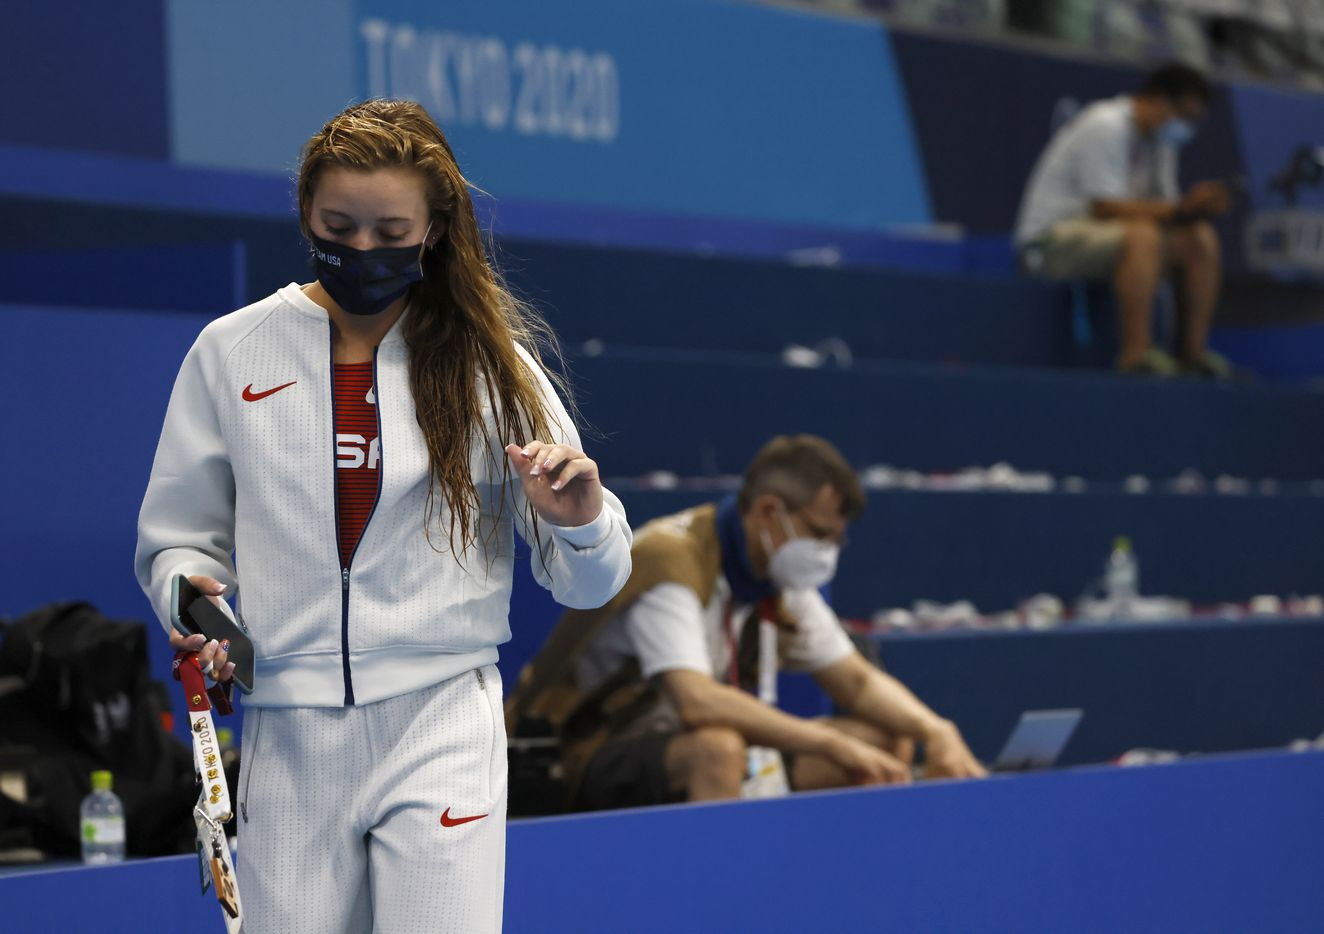 USA's Hailey Hernandez makes her way towards coaches after finishing up with interviews with the media after competing in the women's 3 meter springboard final during the postponed 2020 Tokyo Olympics at Tokyo Aquatics Centre, on Sunday, August 1, 2021, in Tokyo, Japan. (Vernon Bryant/The Dallas Morning News)